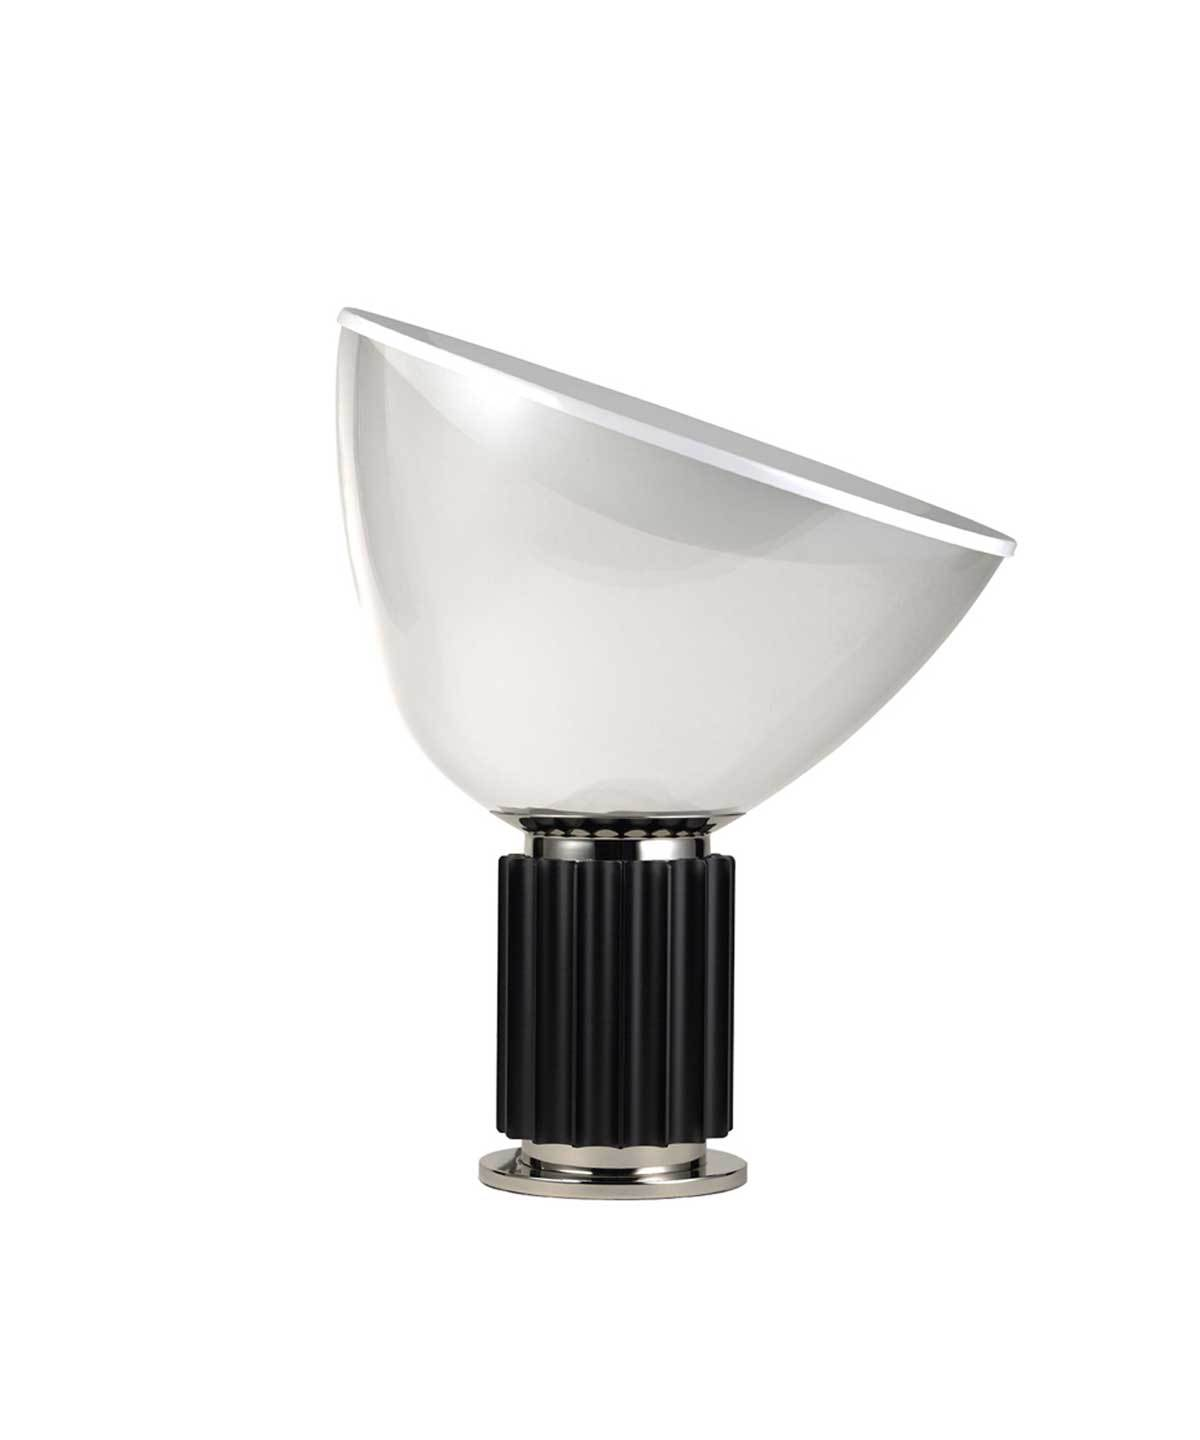 Taccia LED Table Lamp